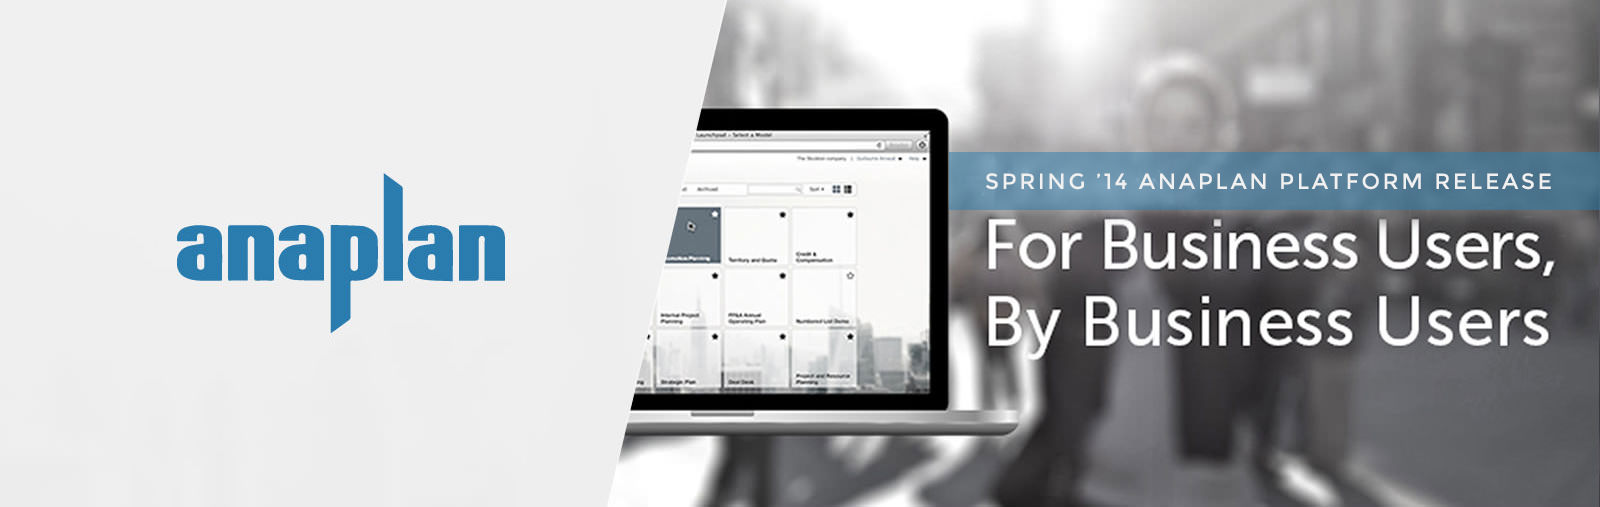 Anaplan - The New Standard forEnterprise Planning Software Anaplan for Sales Anaplan for Finance Anaplan for Operations Cloud-based business planning and modeling tool for sales, operations and financeExplore Anaplan Opportunities                Key Benefits